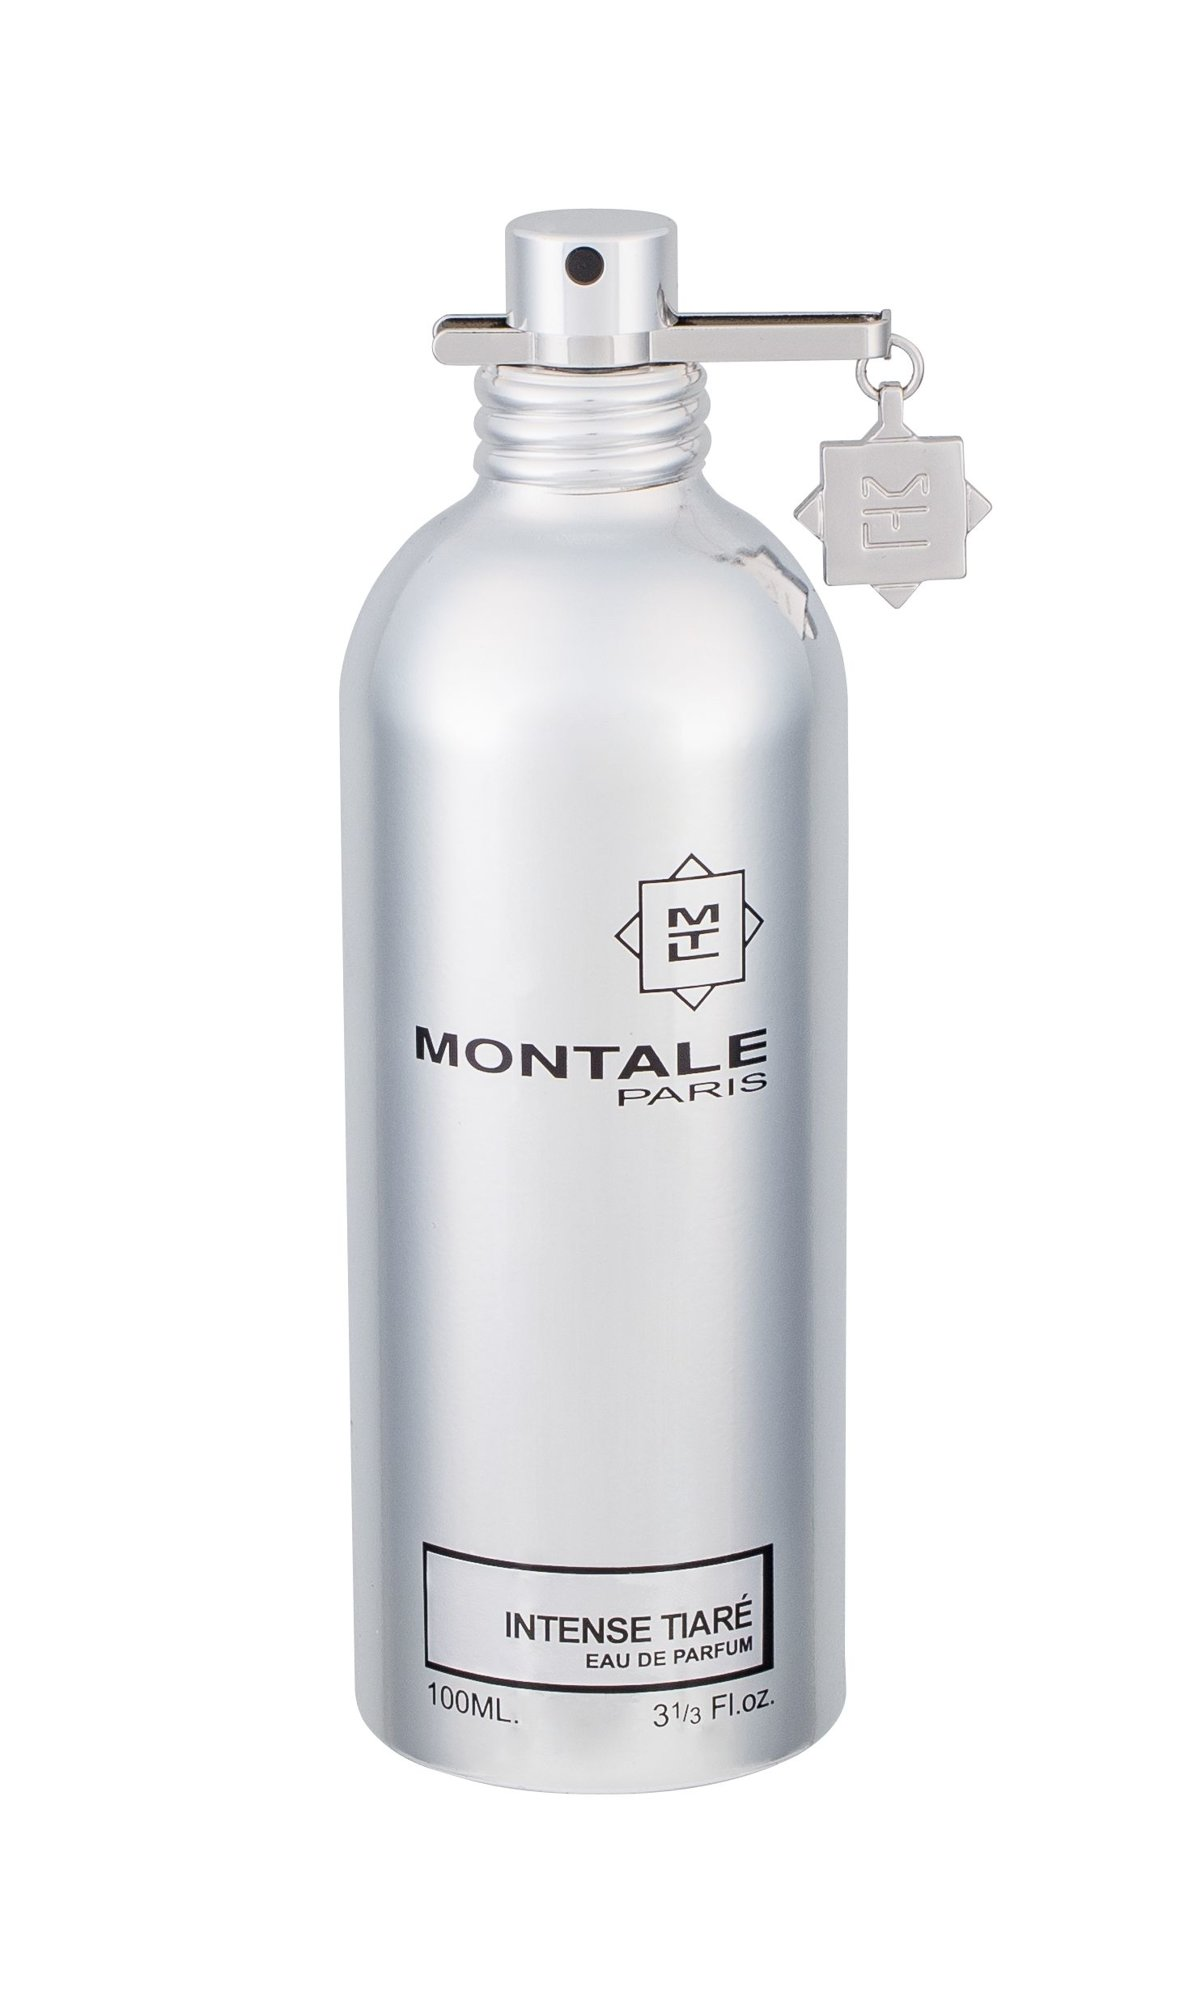 Montale Paris Intense Tiaré EDP 100ml